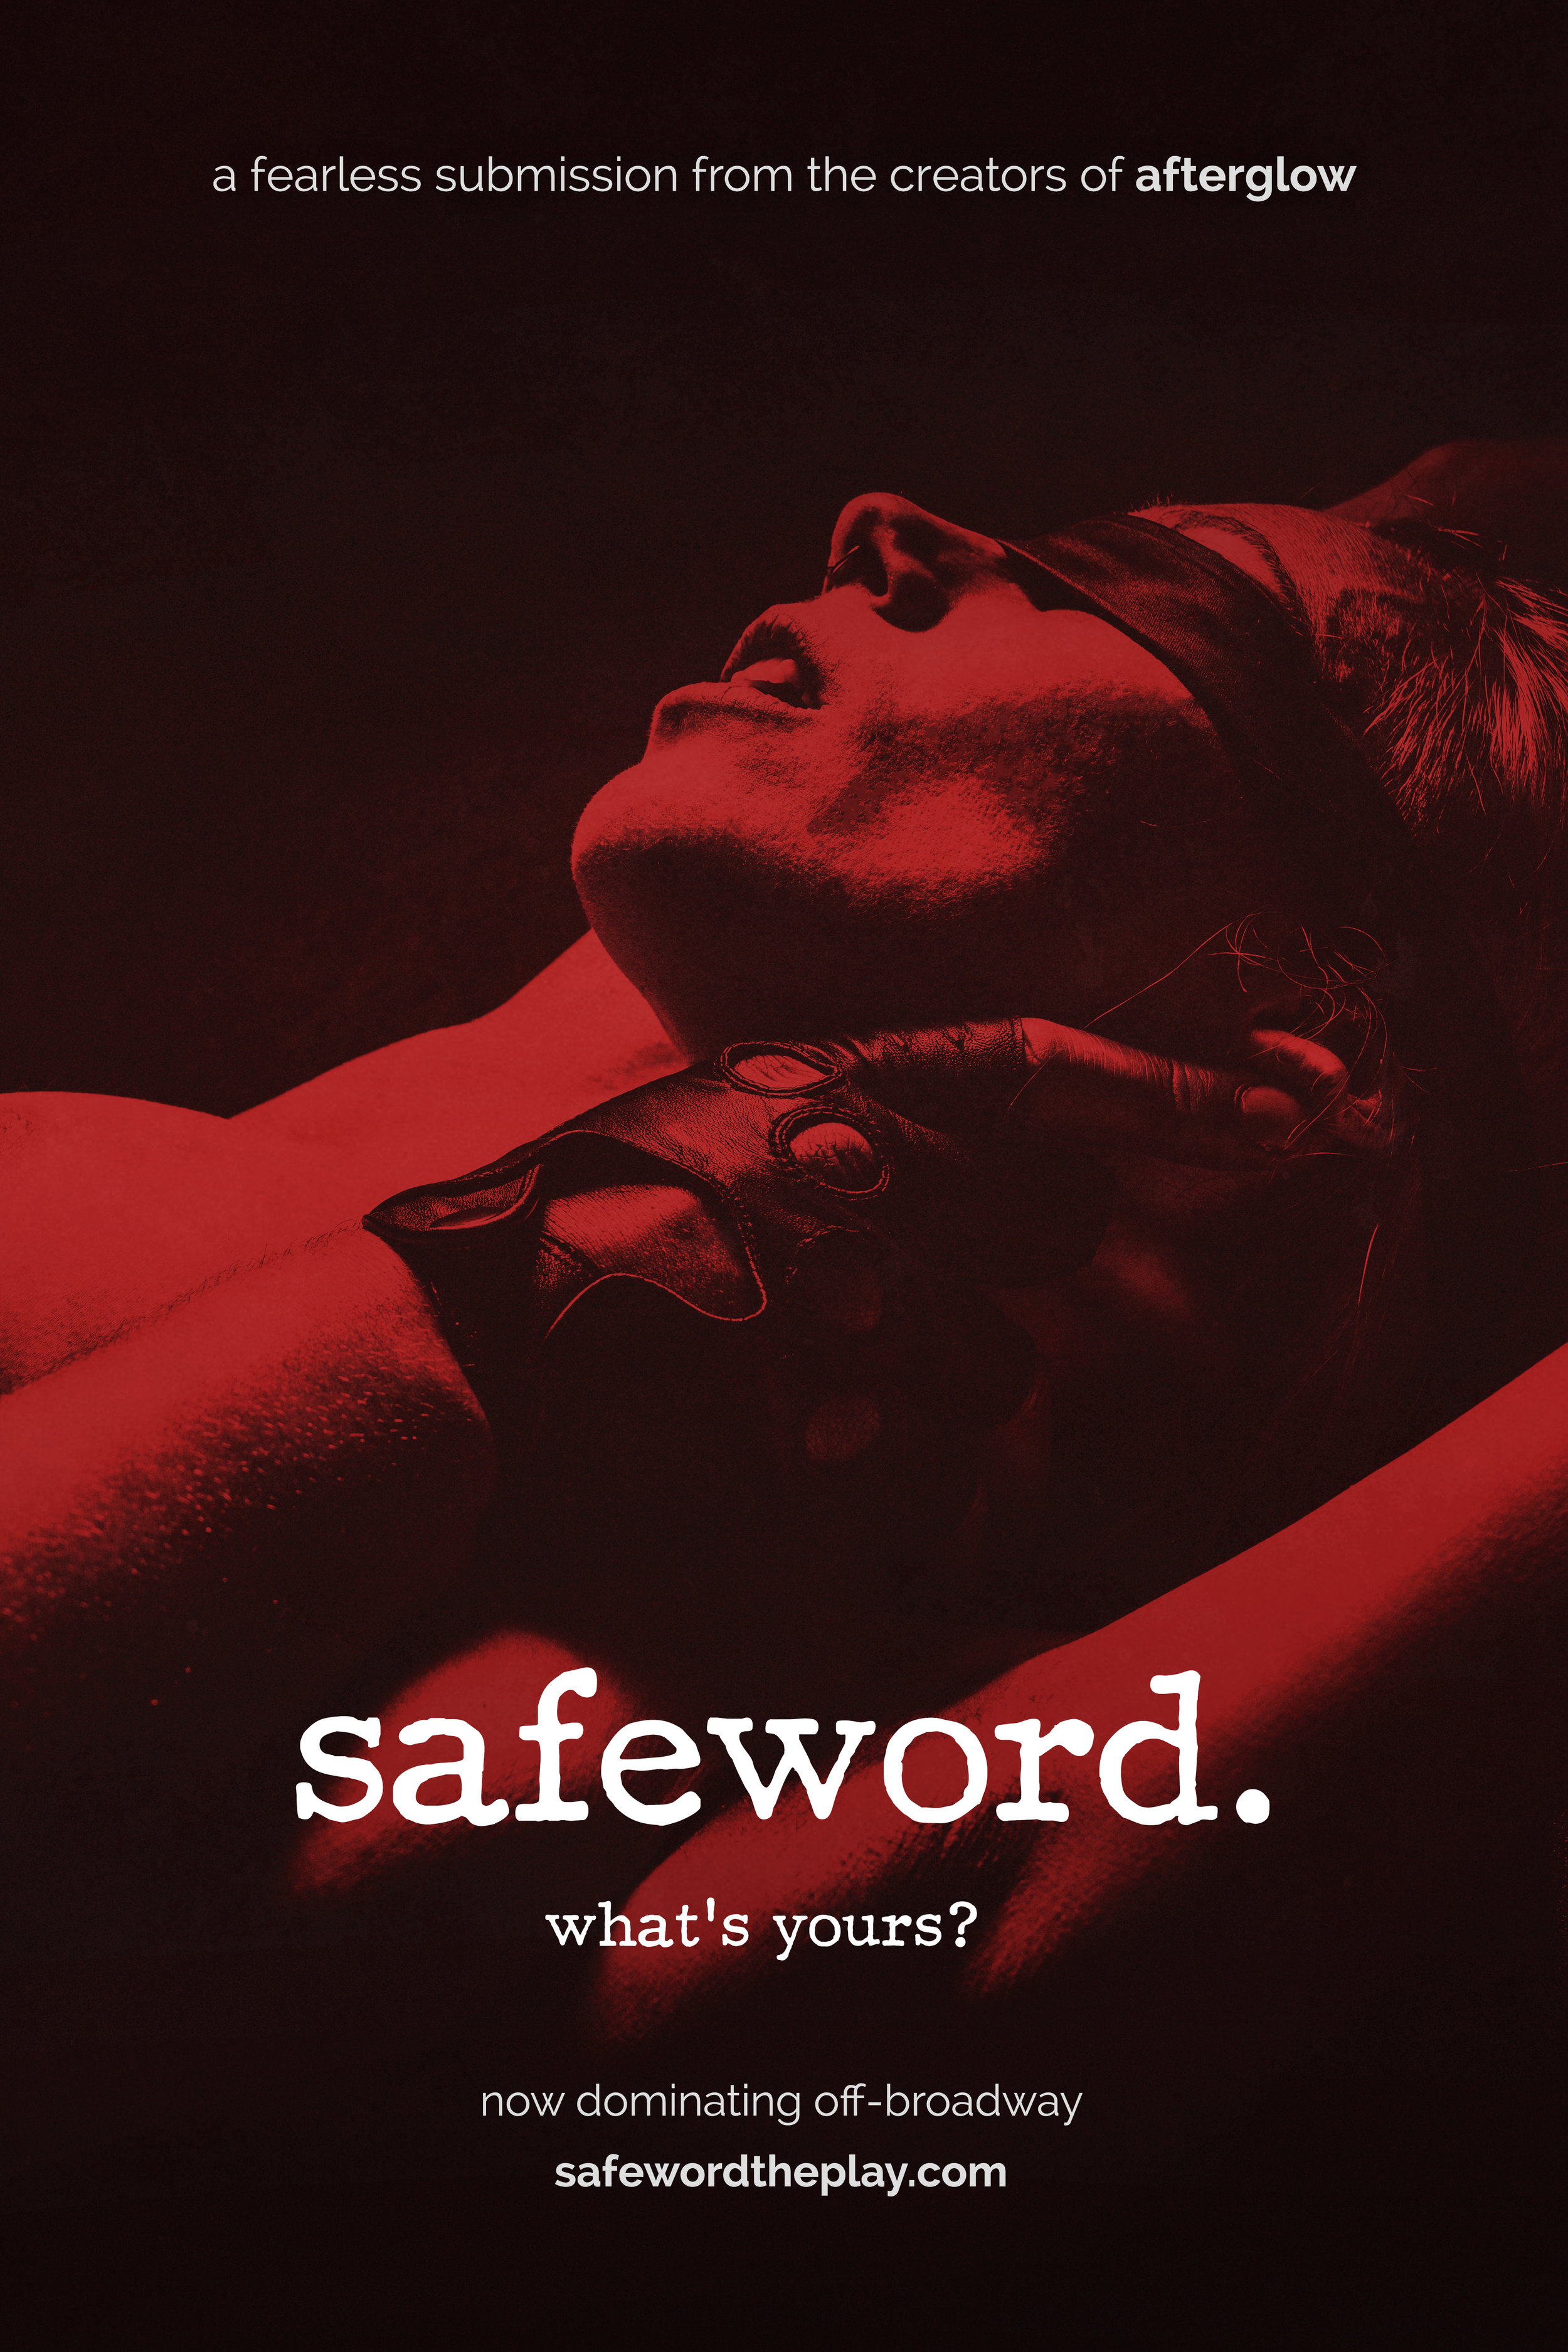 SAFEWORD_24x36_10_CLEAN.jpg